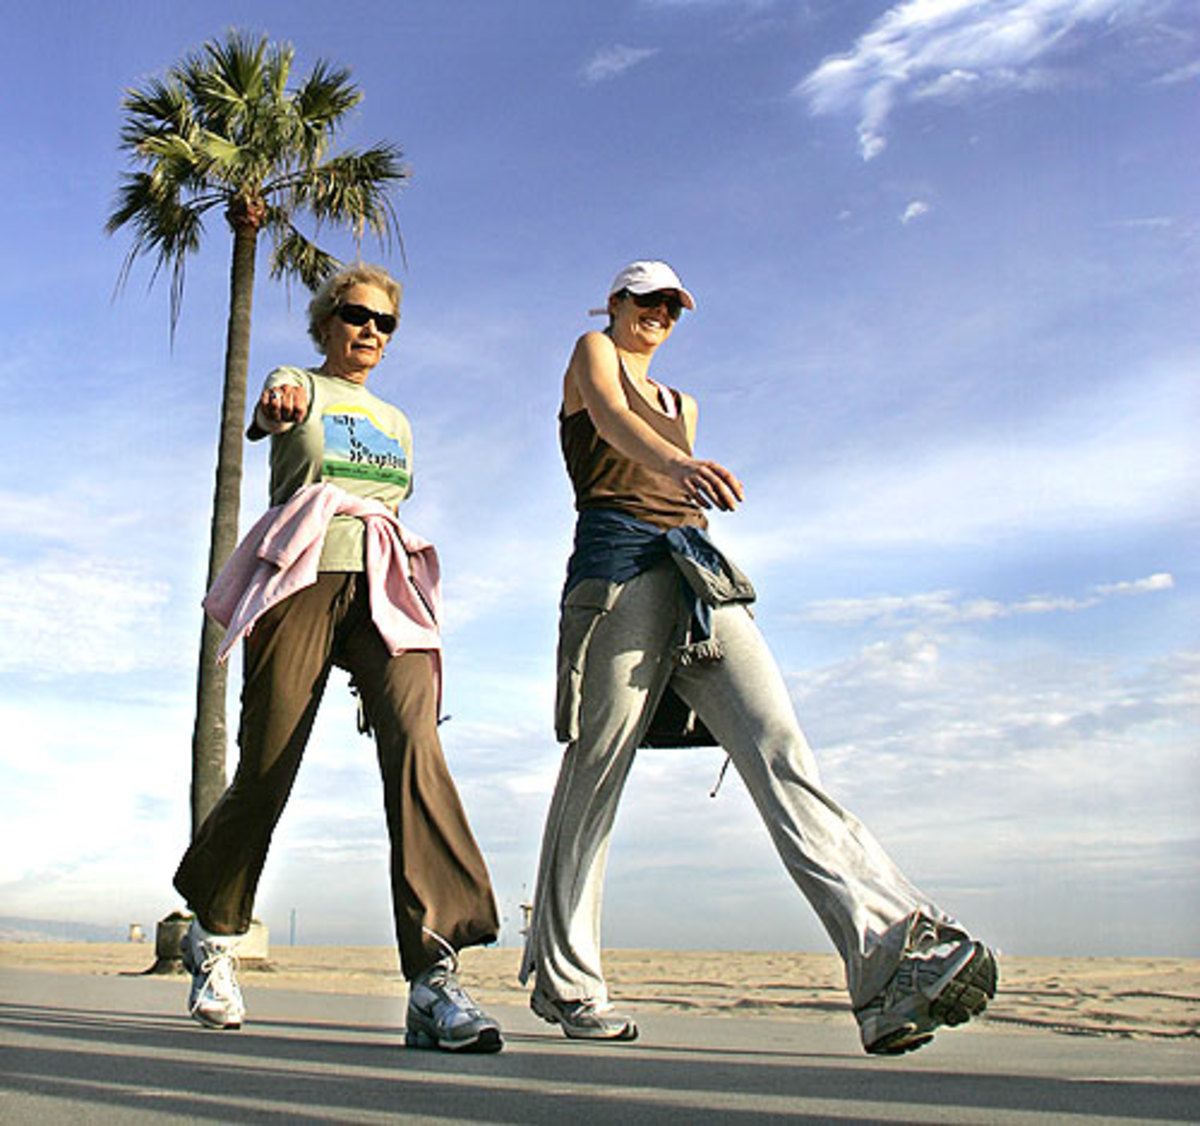 Walking exercise is more fun with a friend